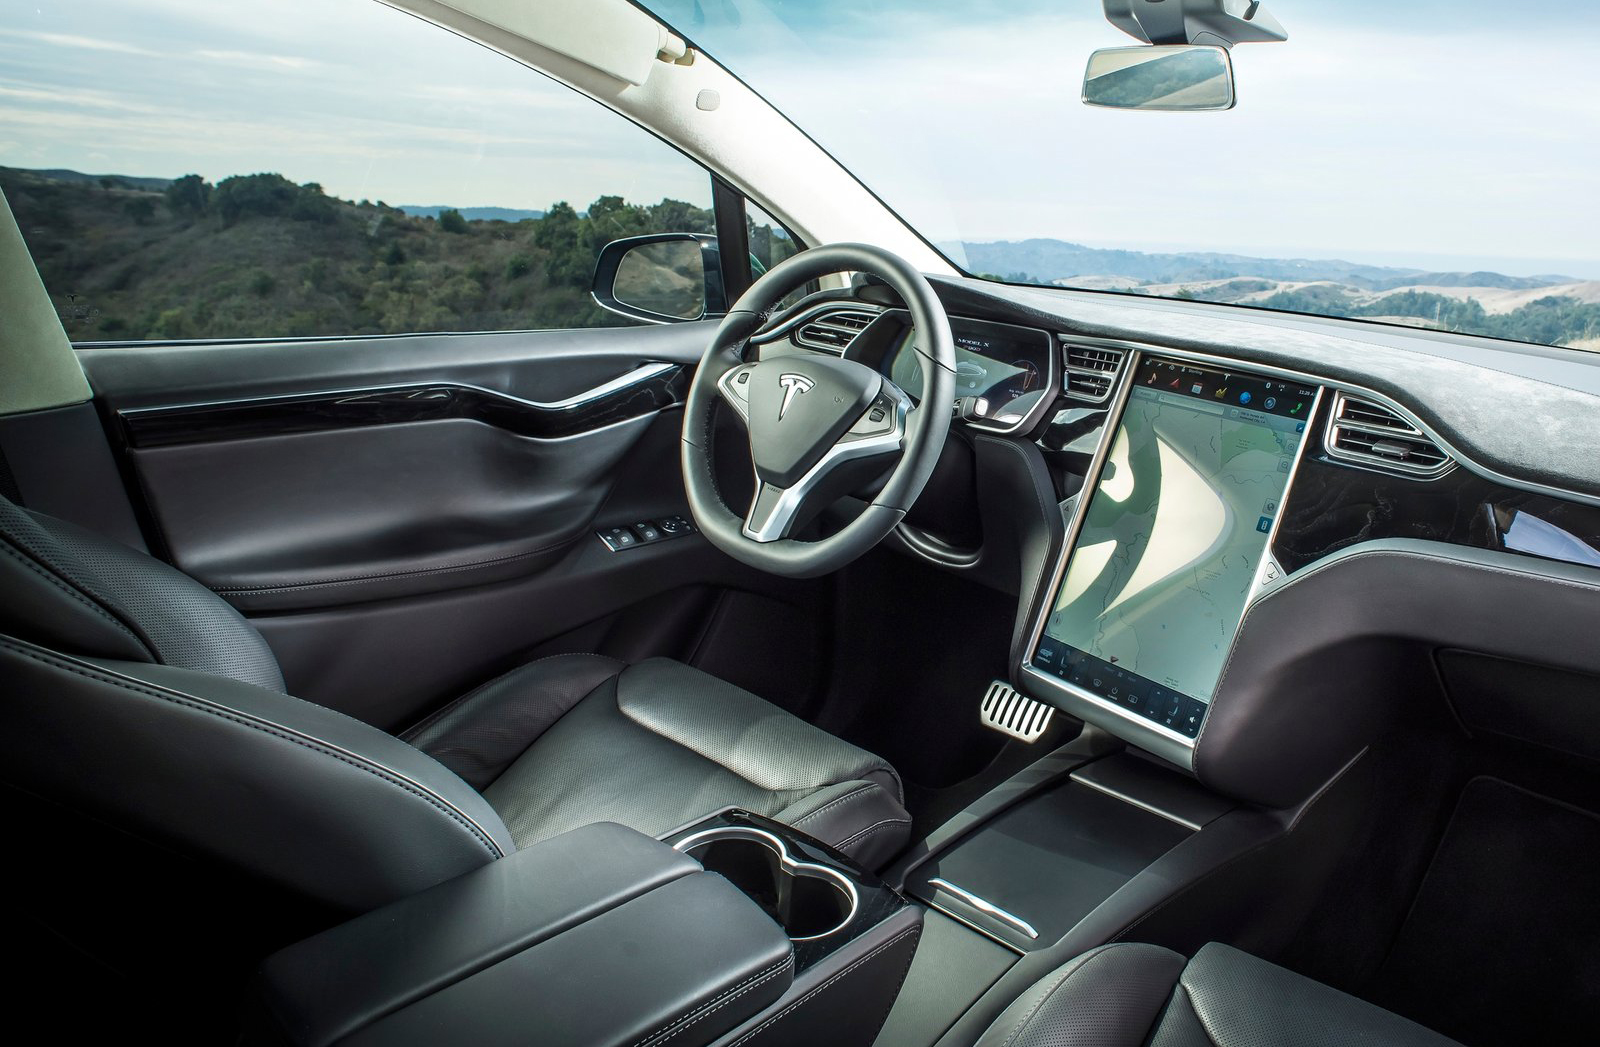 2016 tesla model x small electric suv price range - Tesla Model X Australian Pricing And Specifications For Electric Suv